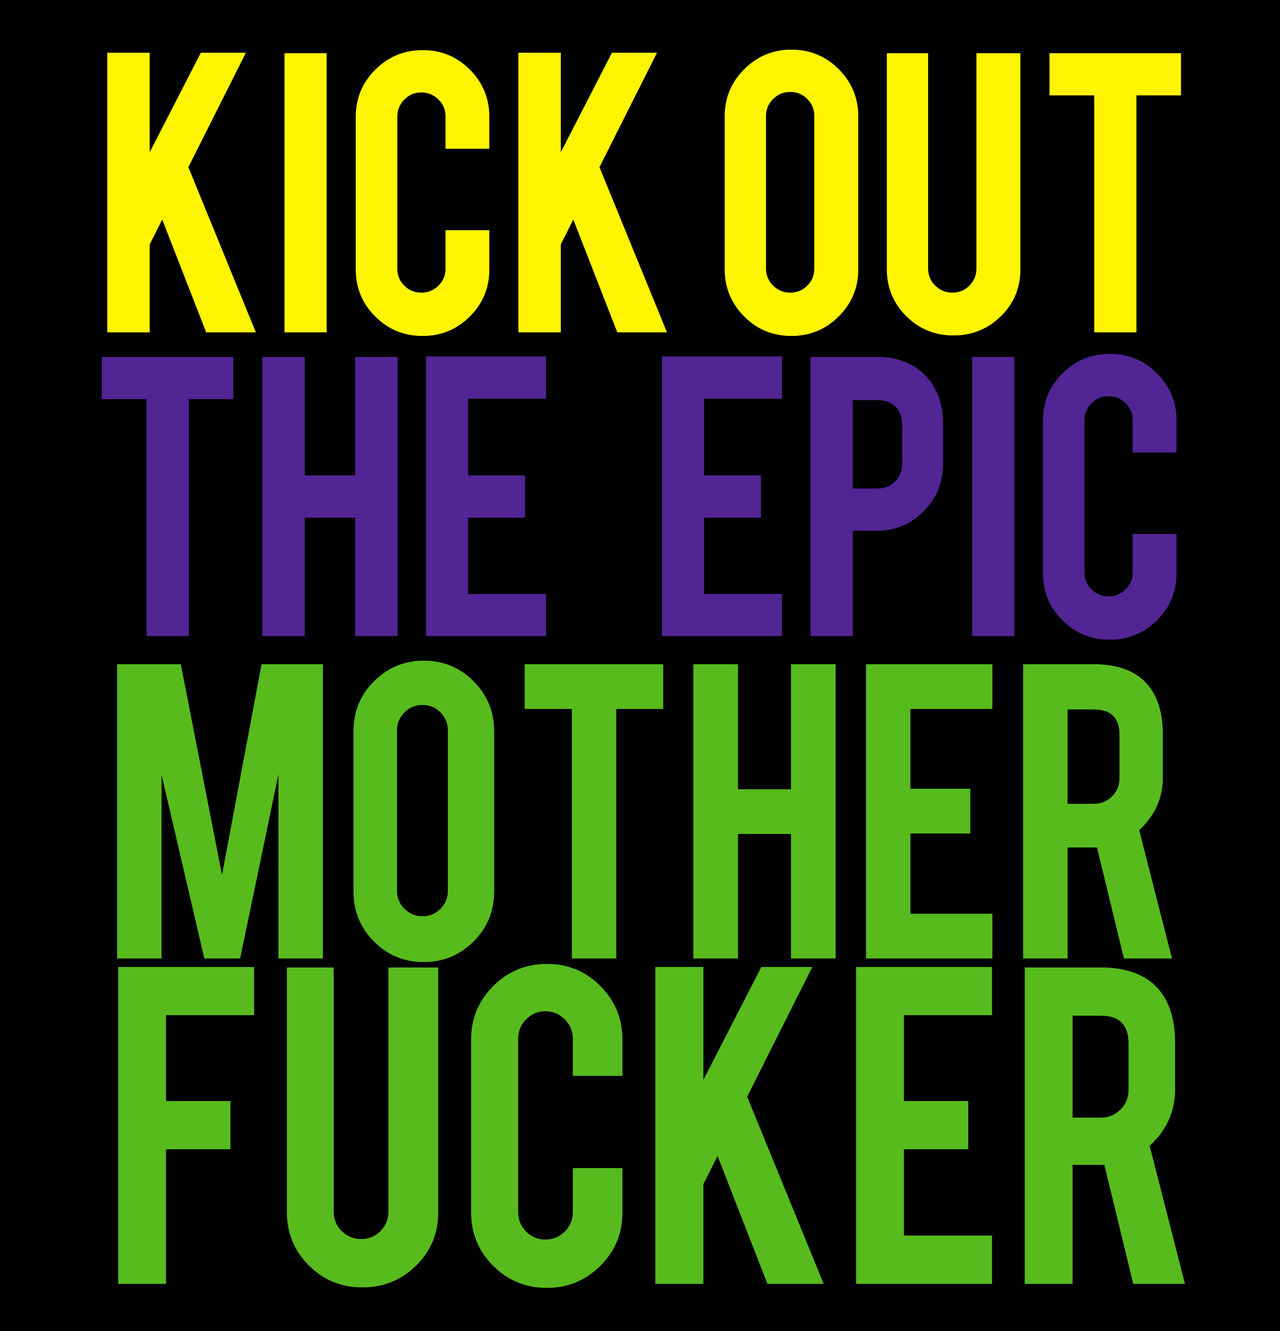 KICK OUT THE EPIC MOTHER FUCKER